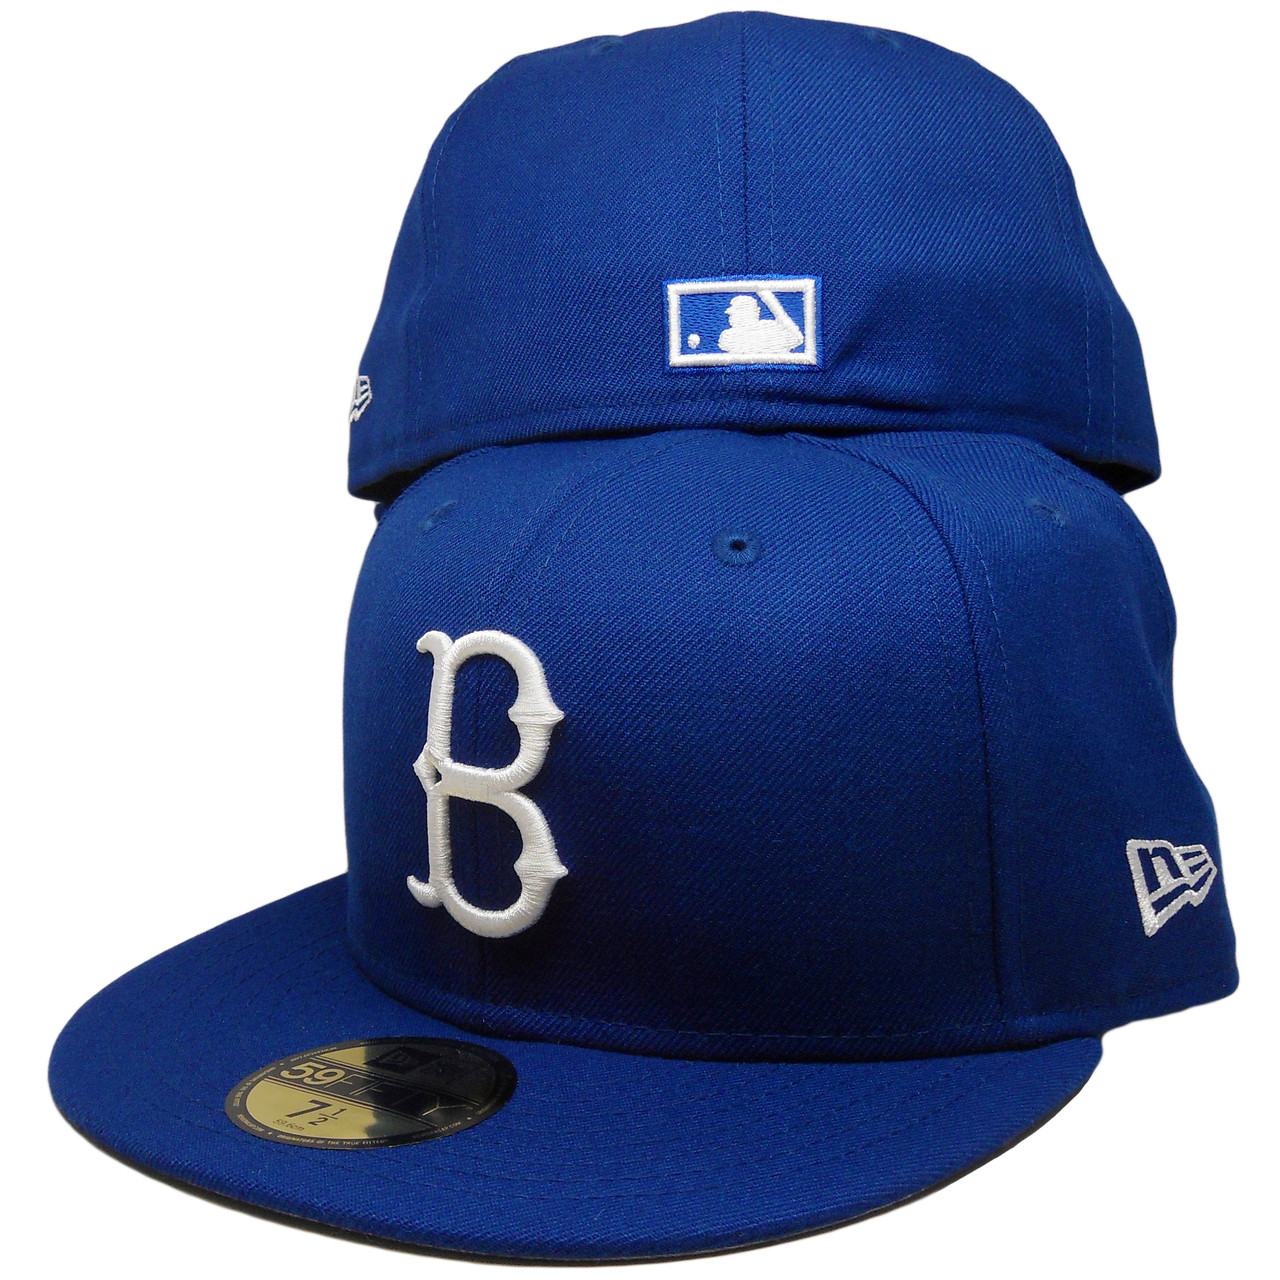 a38b69b2 ... coupon code for brooklyn dodgers custom gray bottom 59fifty fitted hat  royal white 58df1 9b2e6